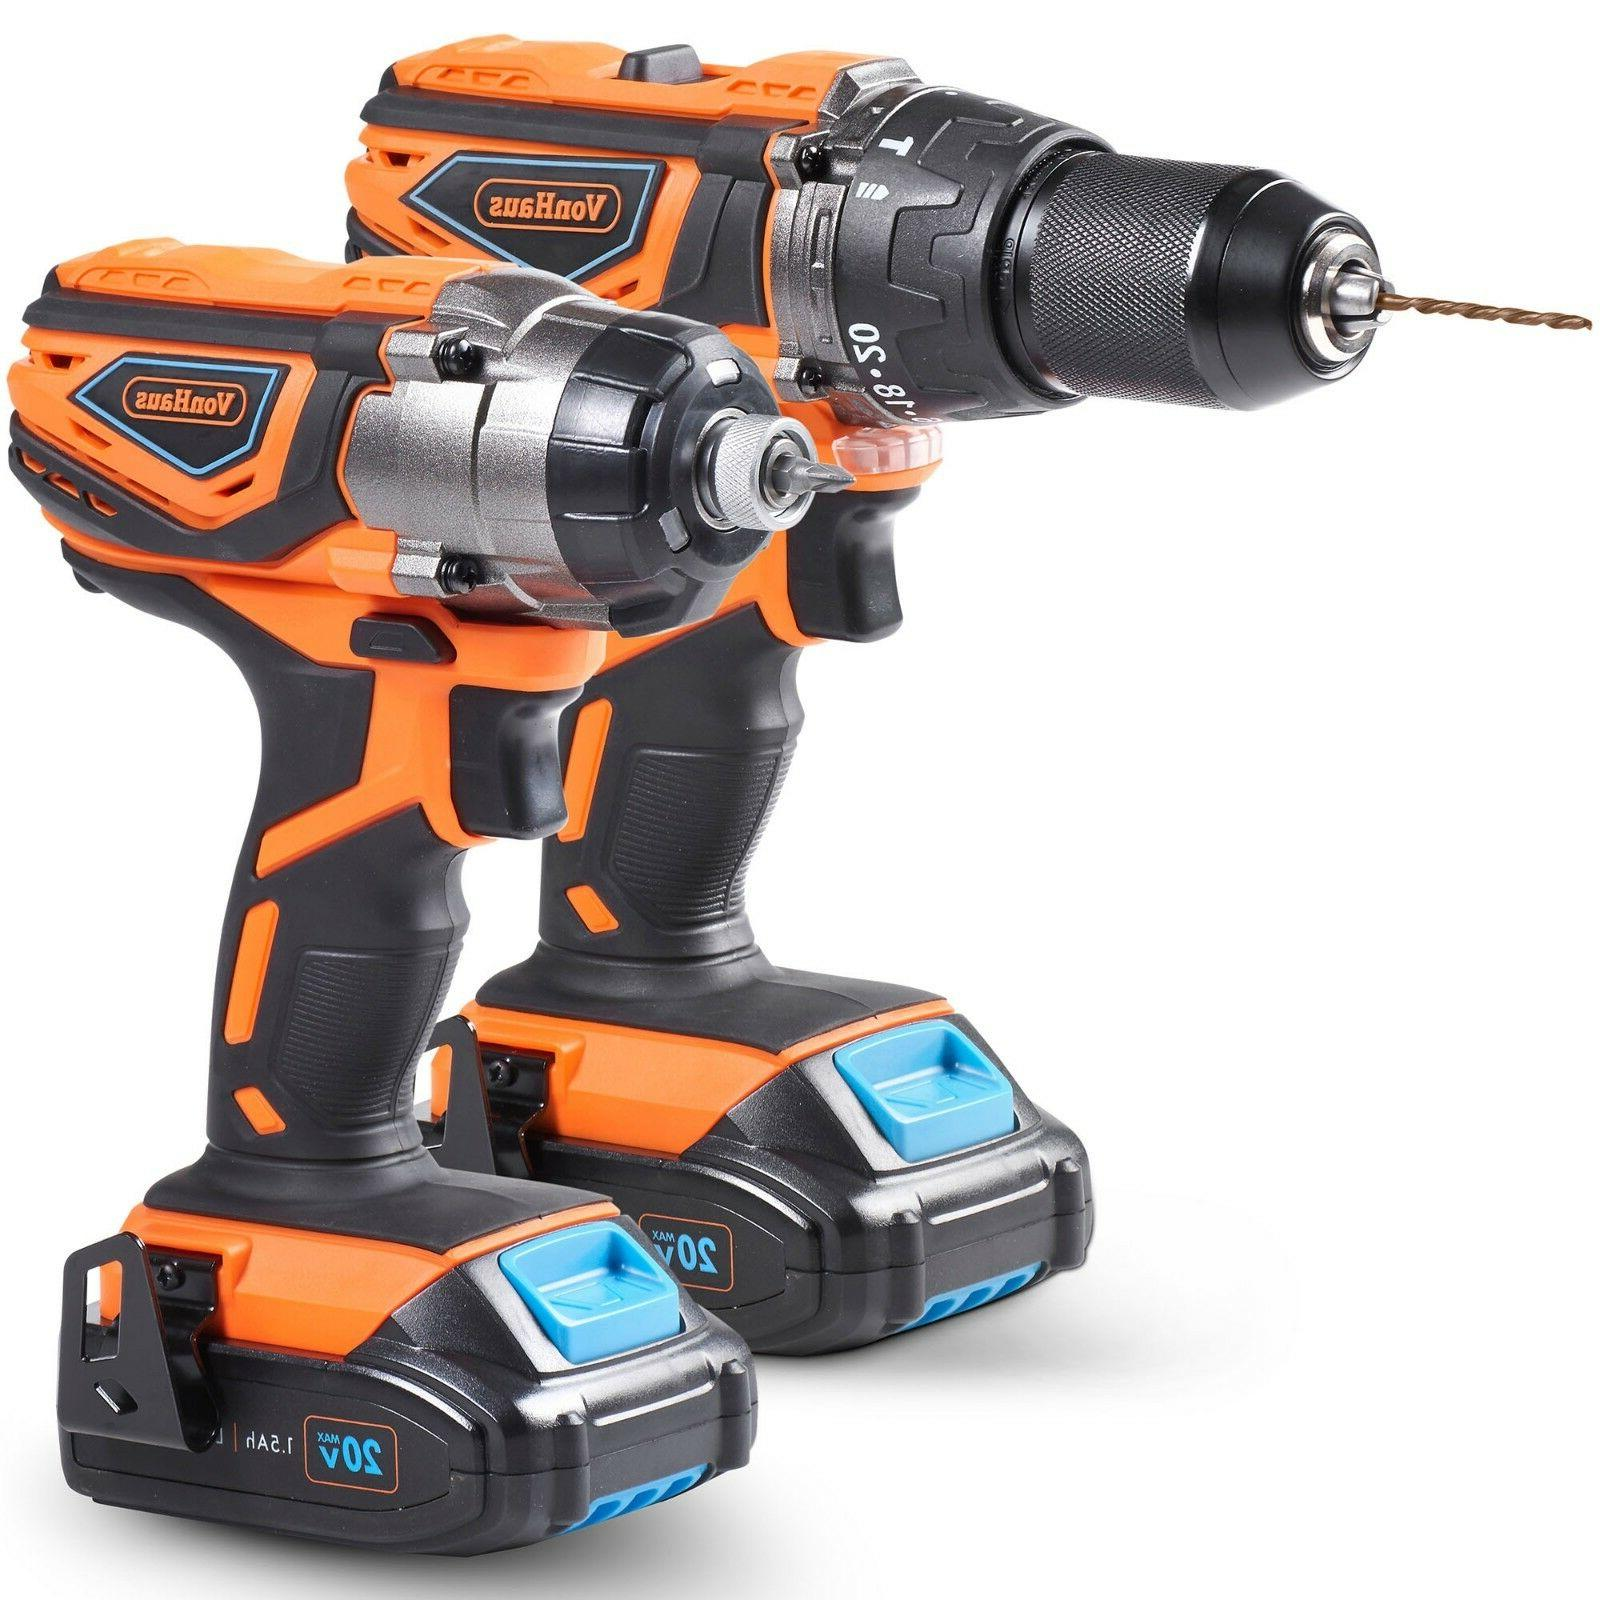 VonHaus Cordless 2-TooI Drill Driver Combo Kit Charger